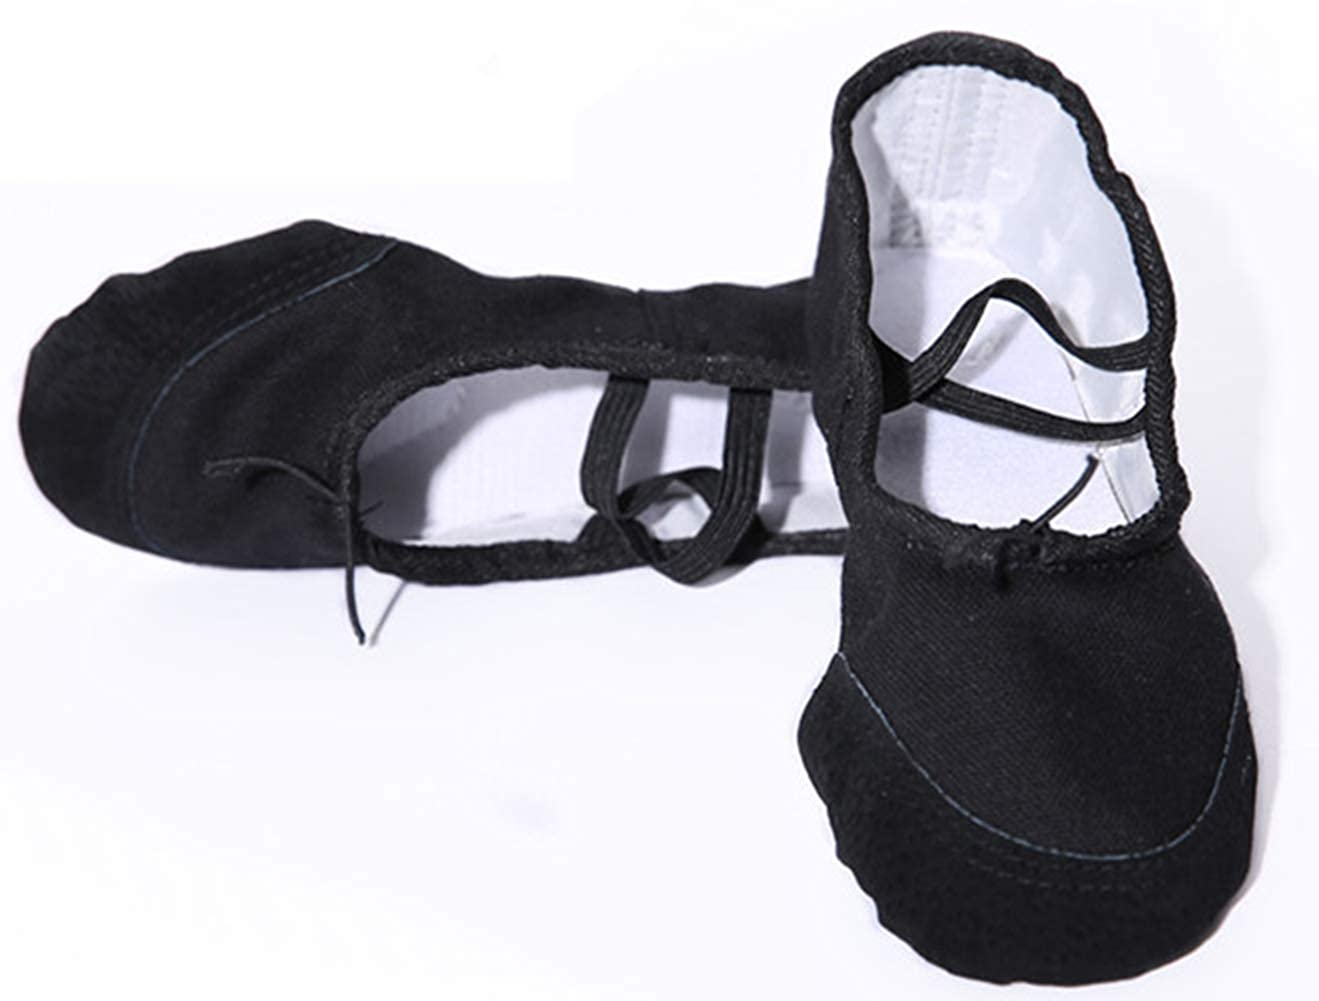 SanLai Girls Leather Dance Ballet Shoes Ballet Slippers Yoga Shoes for Girls//Kids//Toddlers